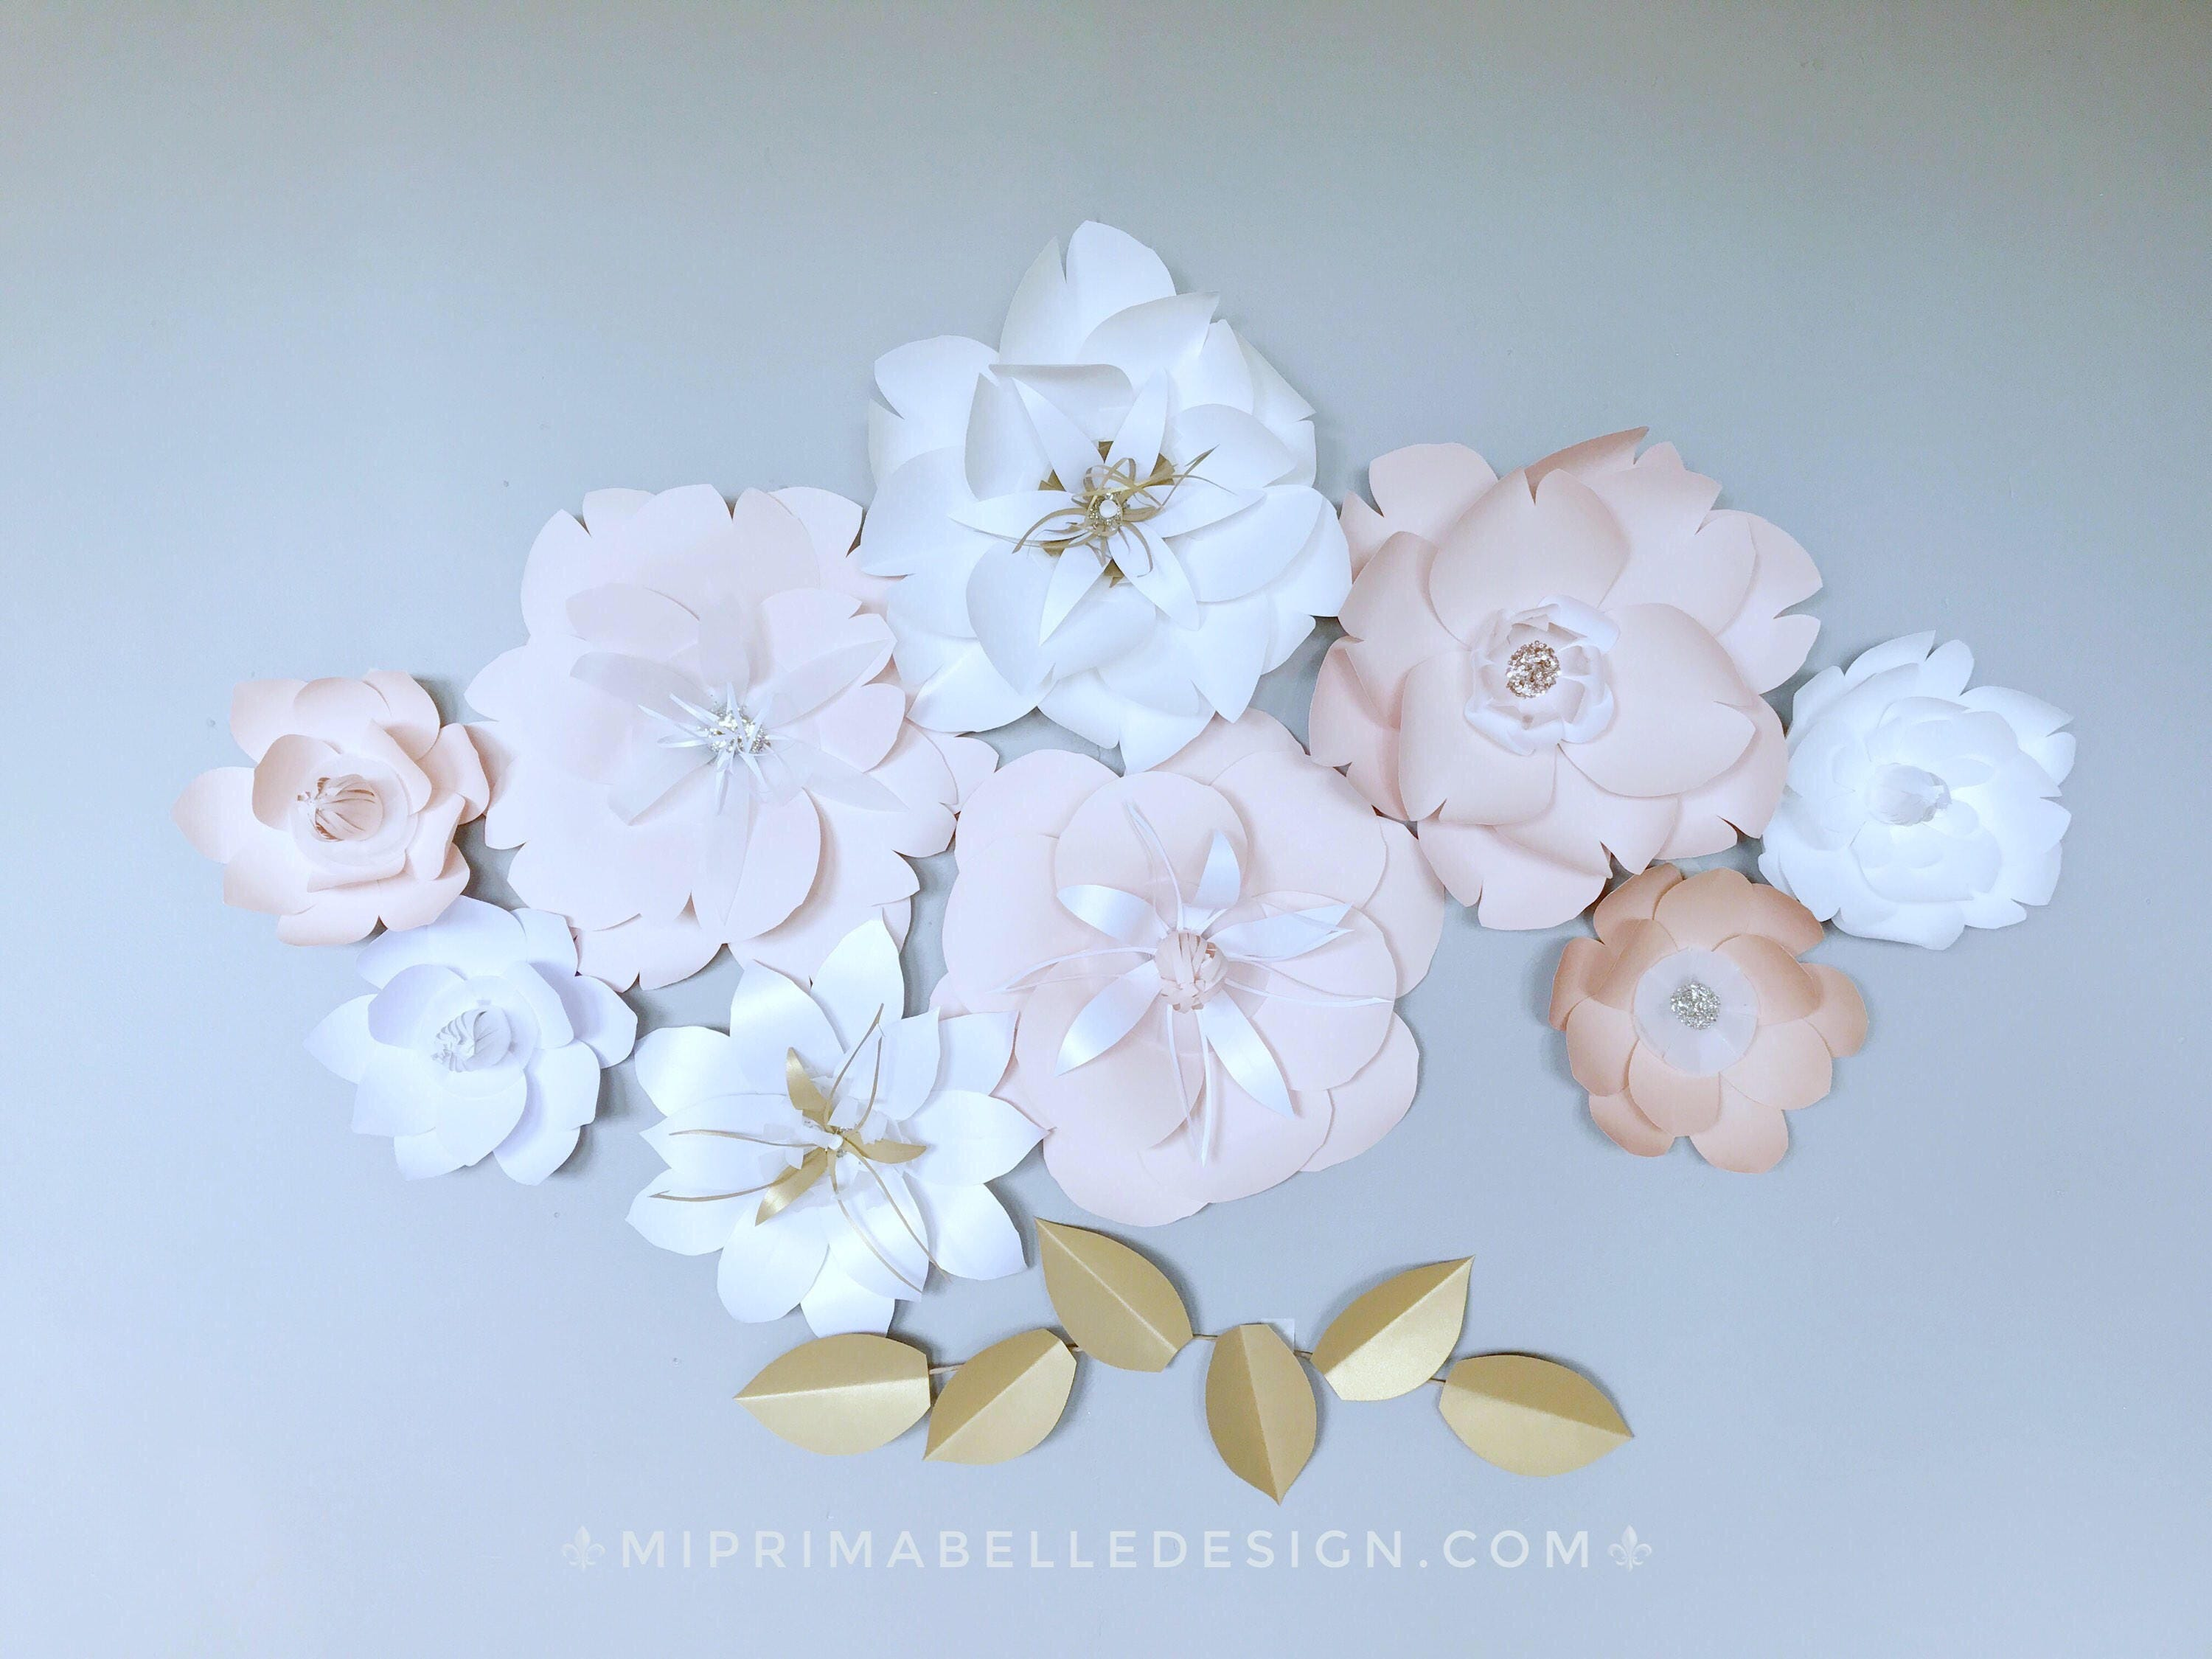 Neutral Colors Wedding Flowers Decor Blush And Gold Paper Flowers